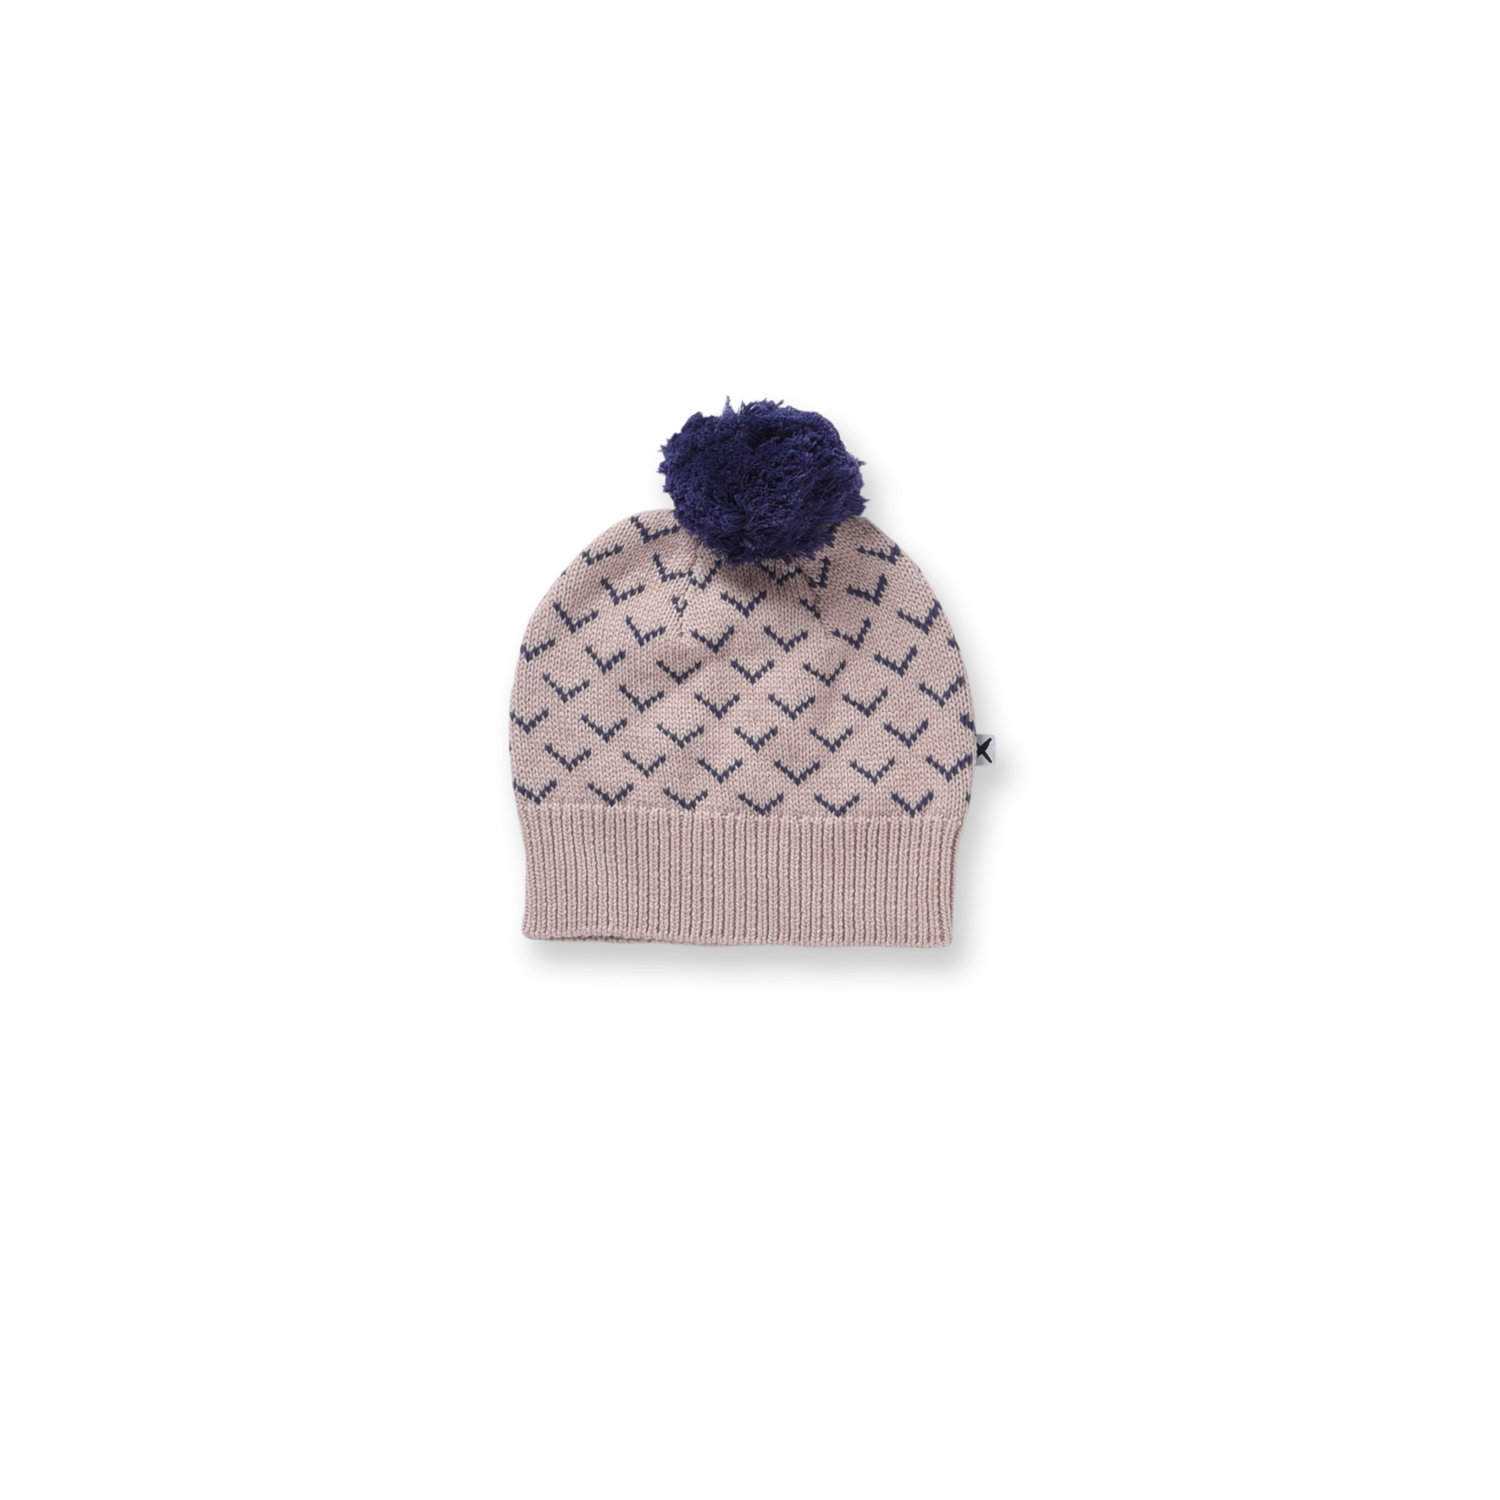 Minti Cable Knit Beanie Oatmeal